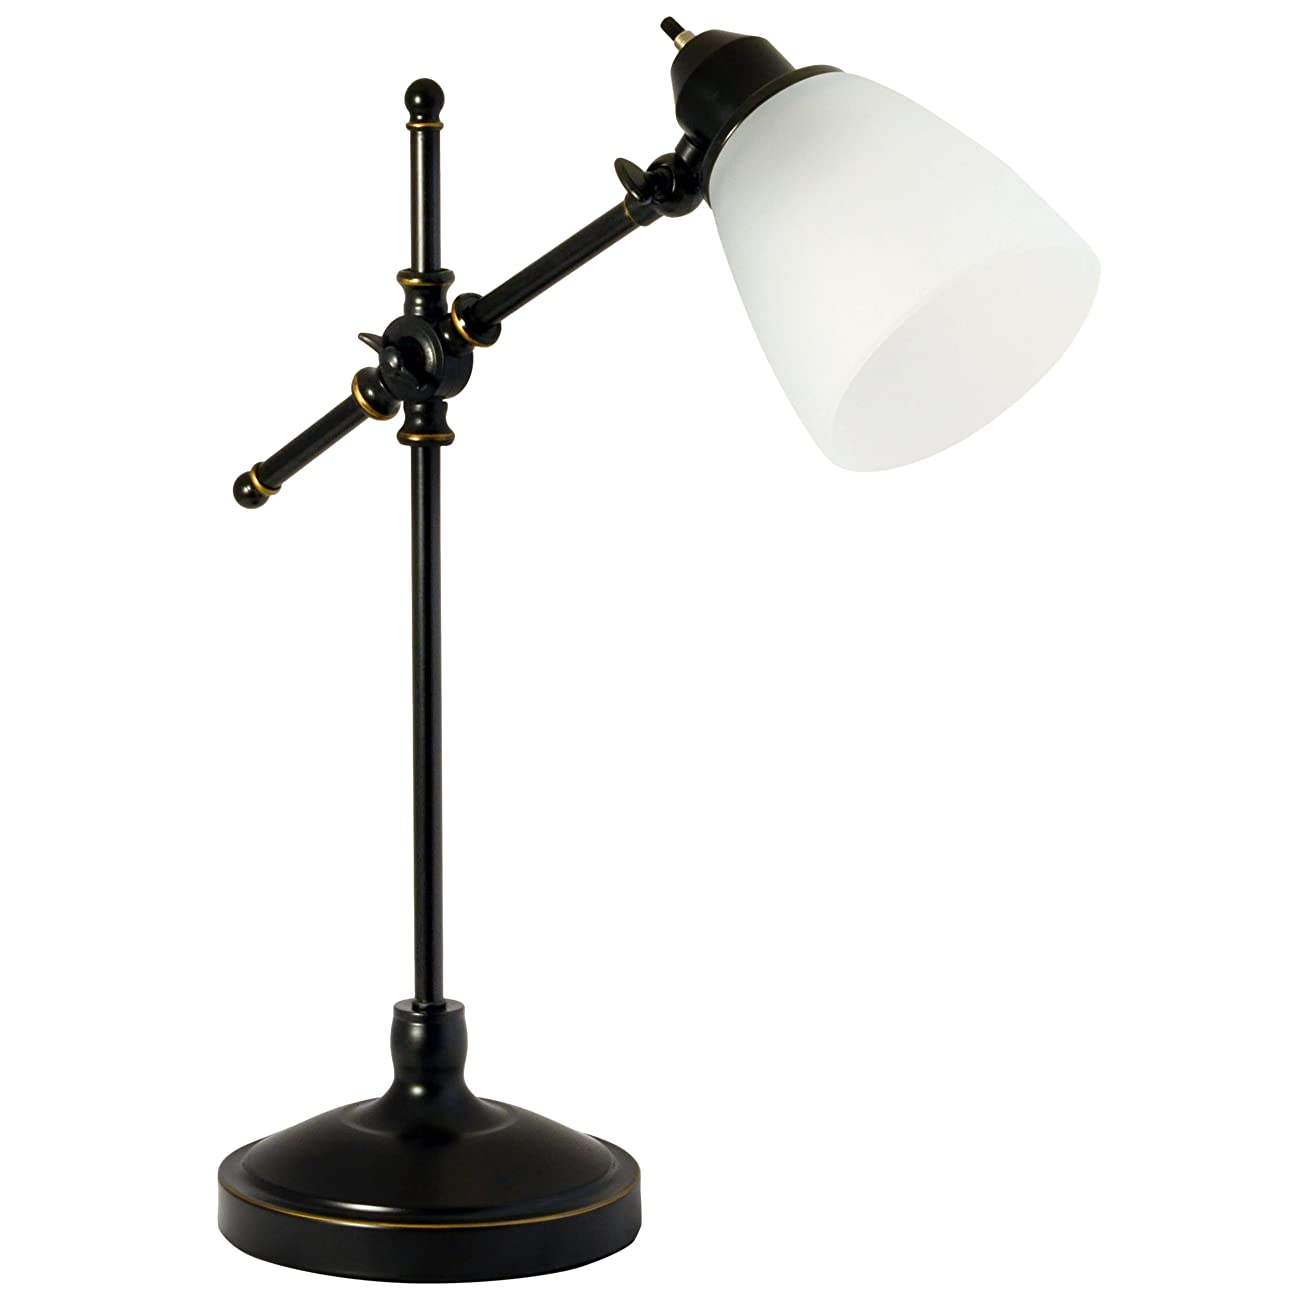 Light Accents Antique Style Desk Lamp with Black with Gold Trim and Frosted White Glass Shade Desk Light 0